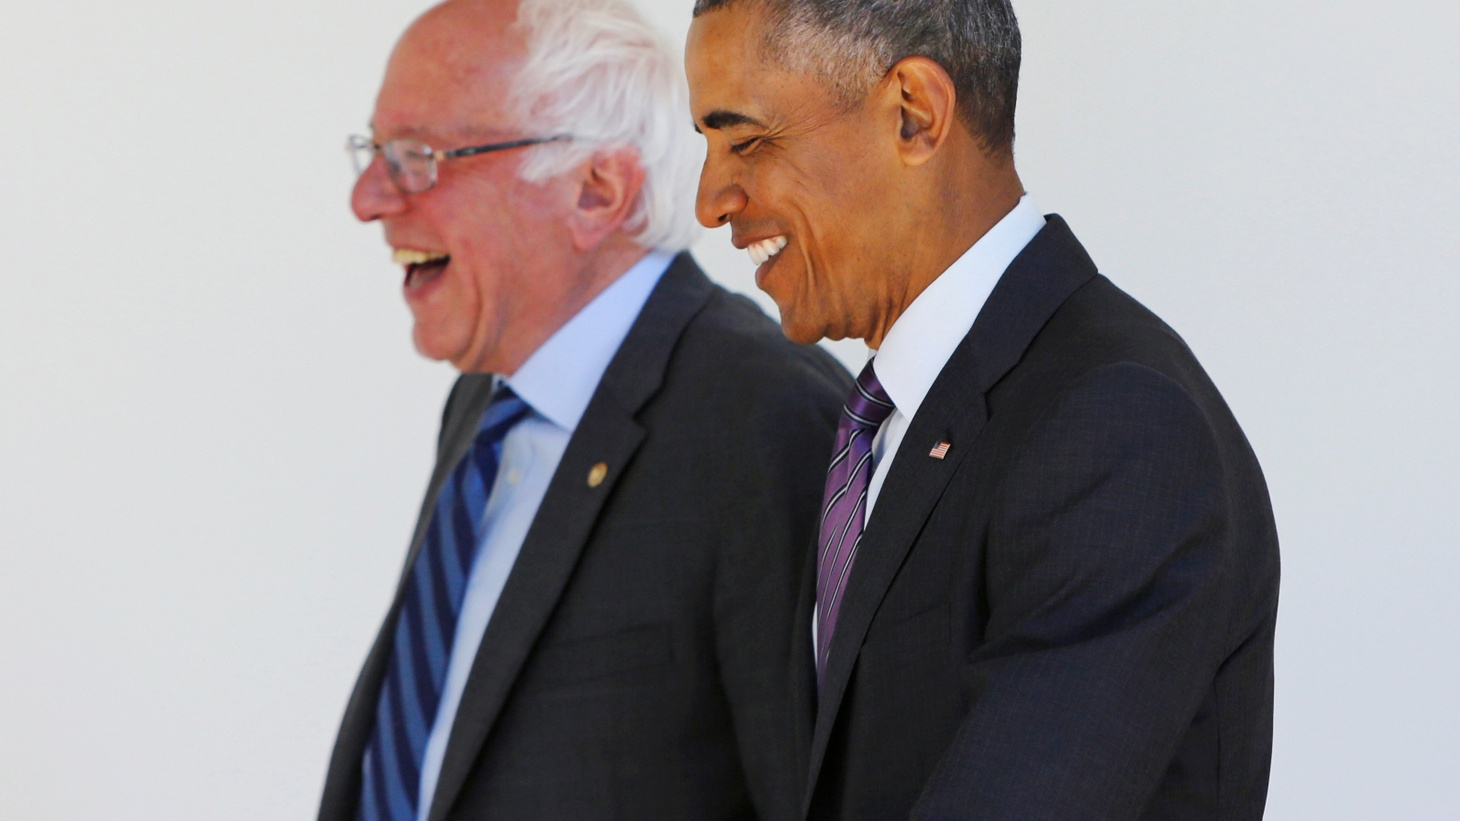 President Obama endorsed Hillary Clinton for President Thursday. The president met earlier in the day with Bernie Sanders, who is already looking ahead to the party convention in July. Can Sanders influence the party platform?